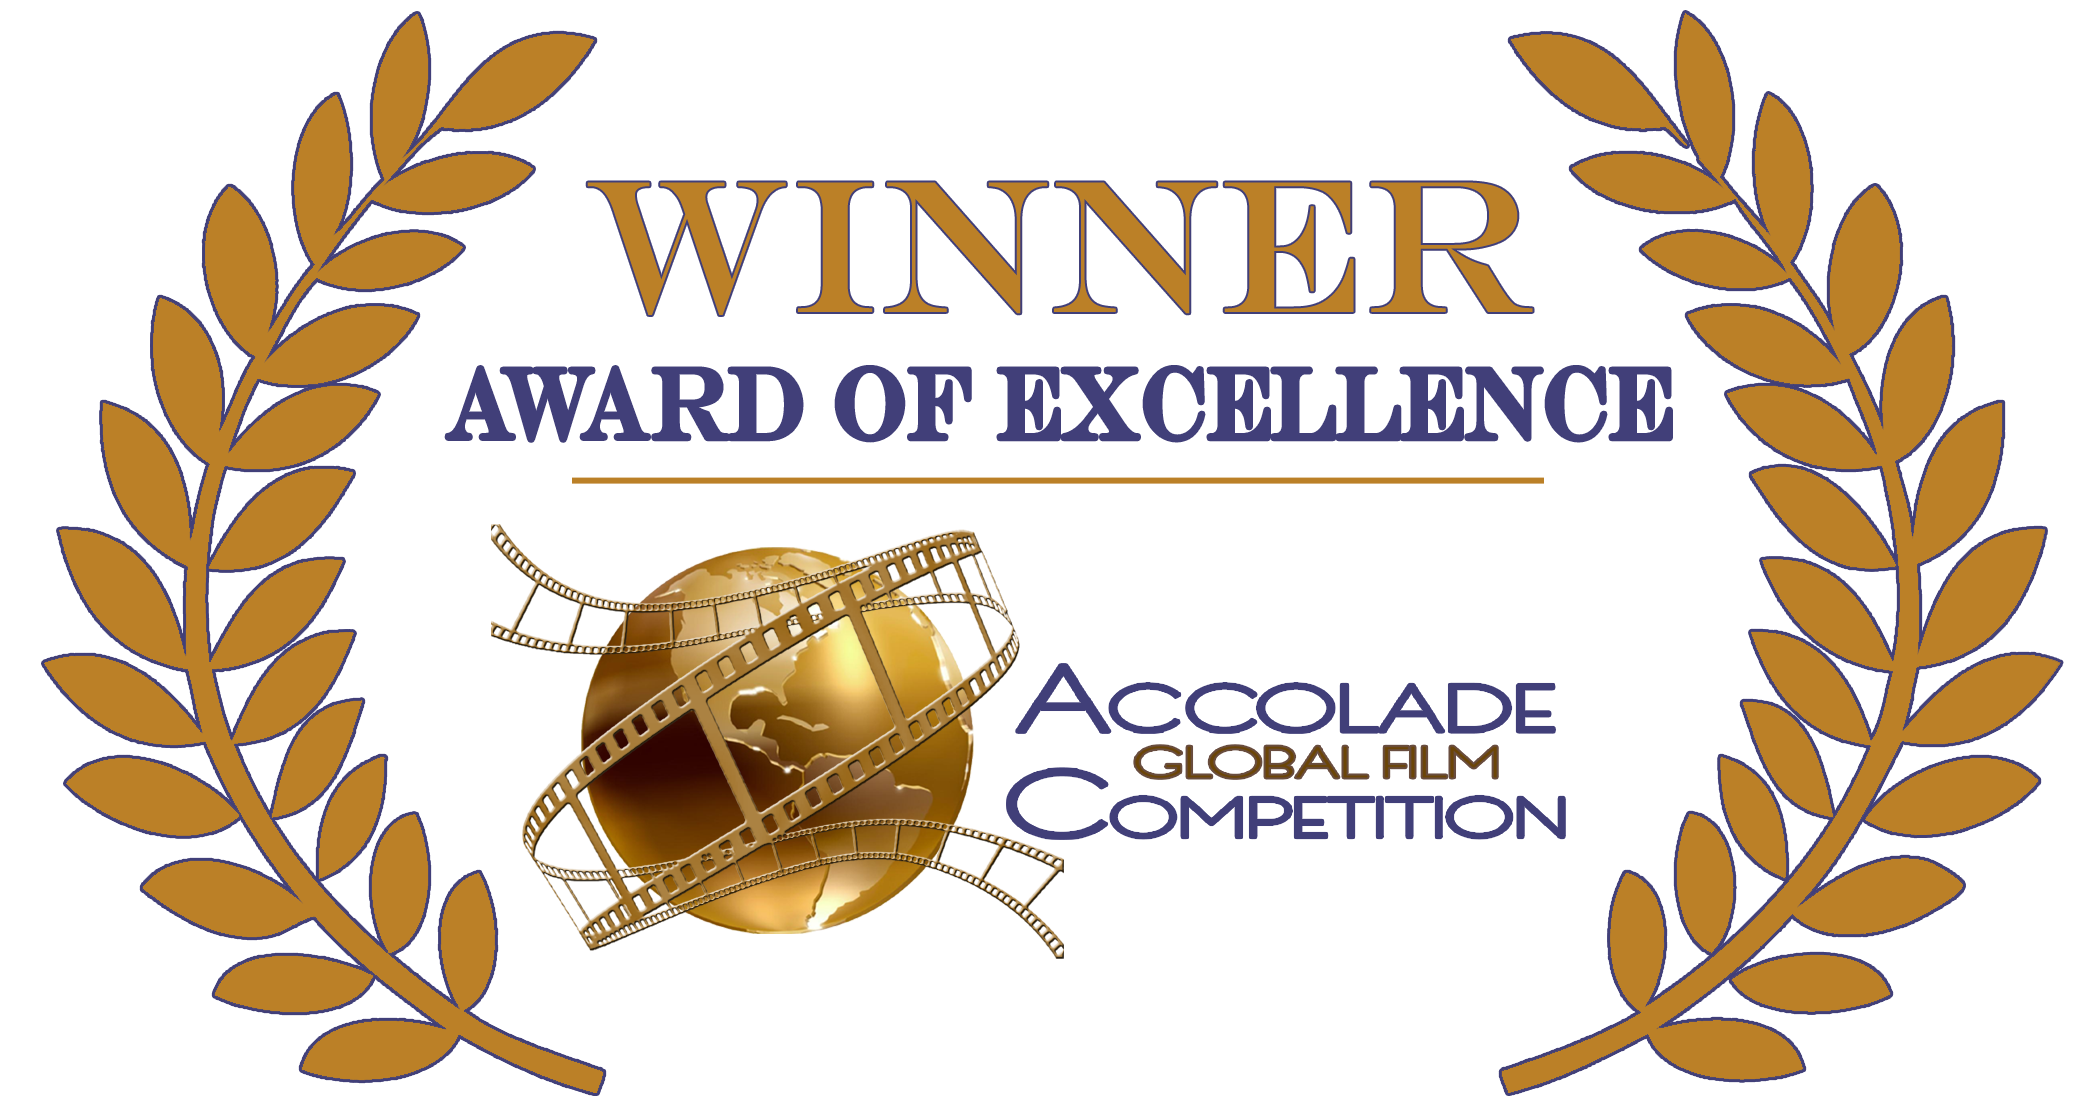 Accolade-Excellence-colorful1.png